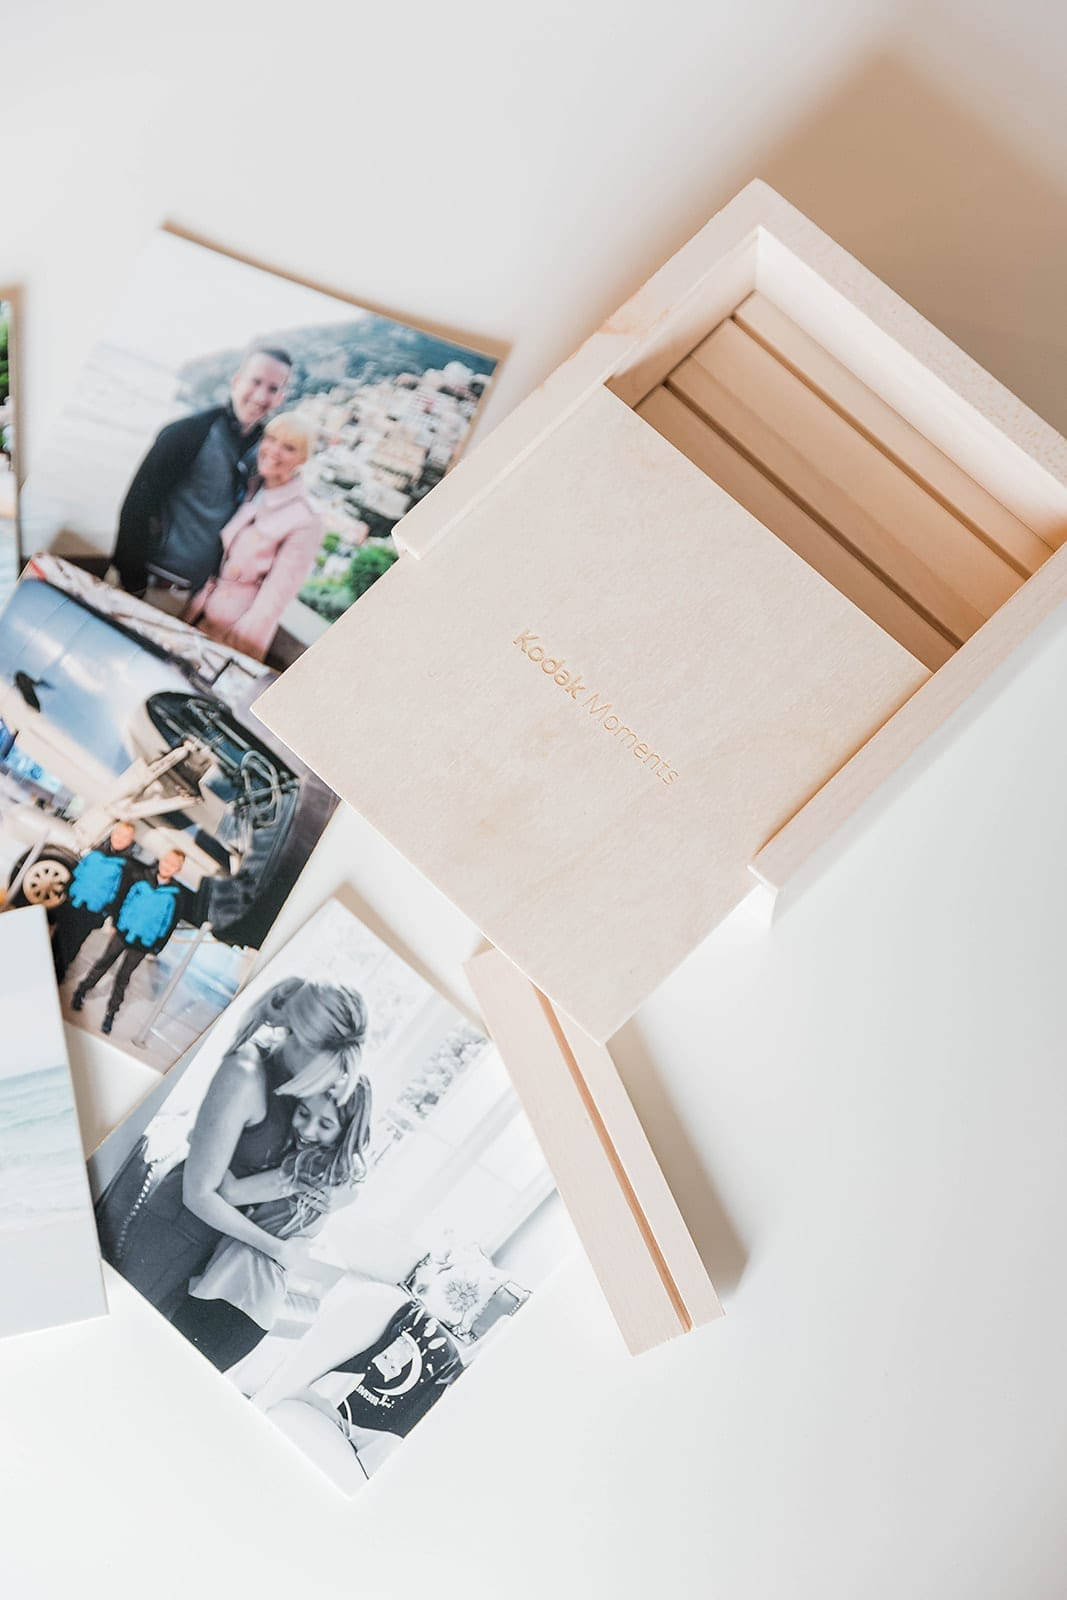 Looking for creative photo display ideas? This box is the bomb! Print ten photos once and change them all year to display!